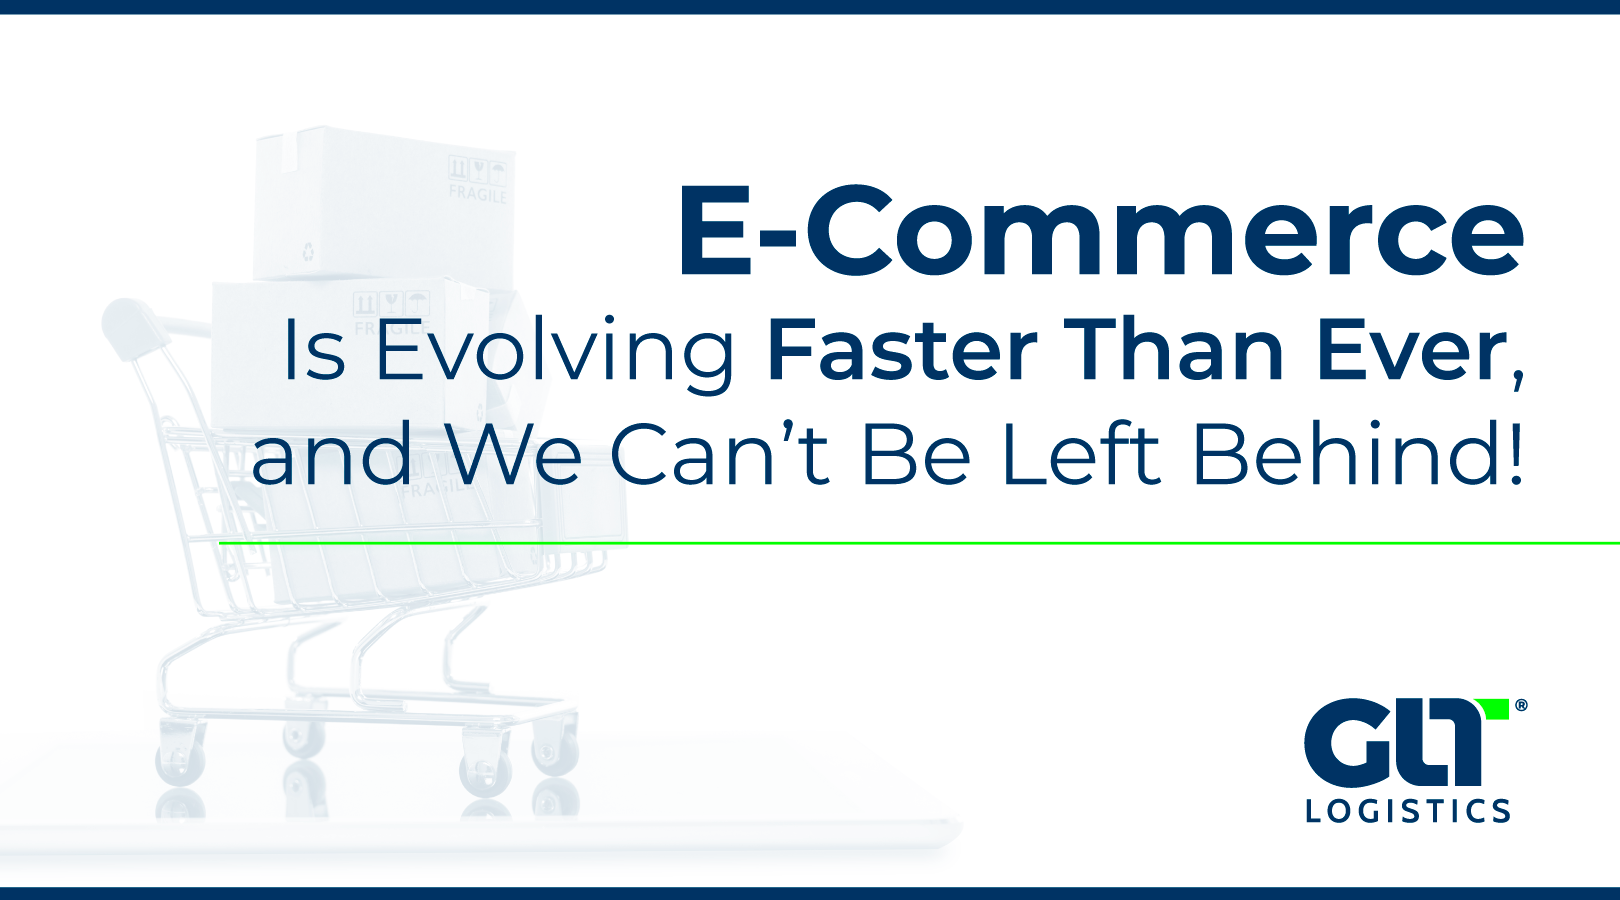 E-Commerce Is Evolving Faster Than Ever, and We Can't Be Left Behind!